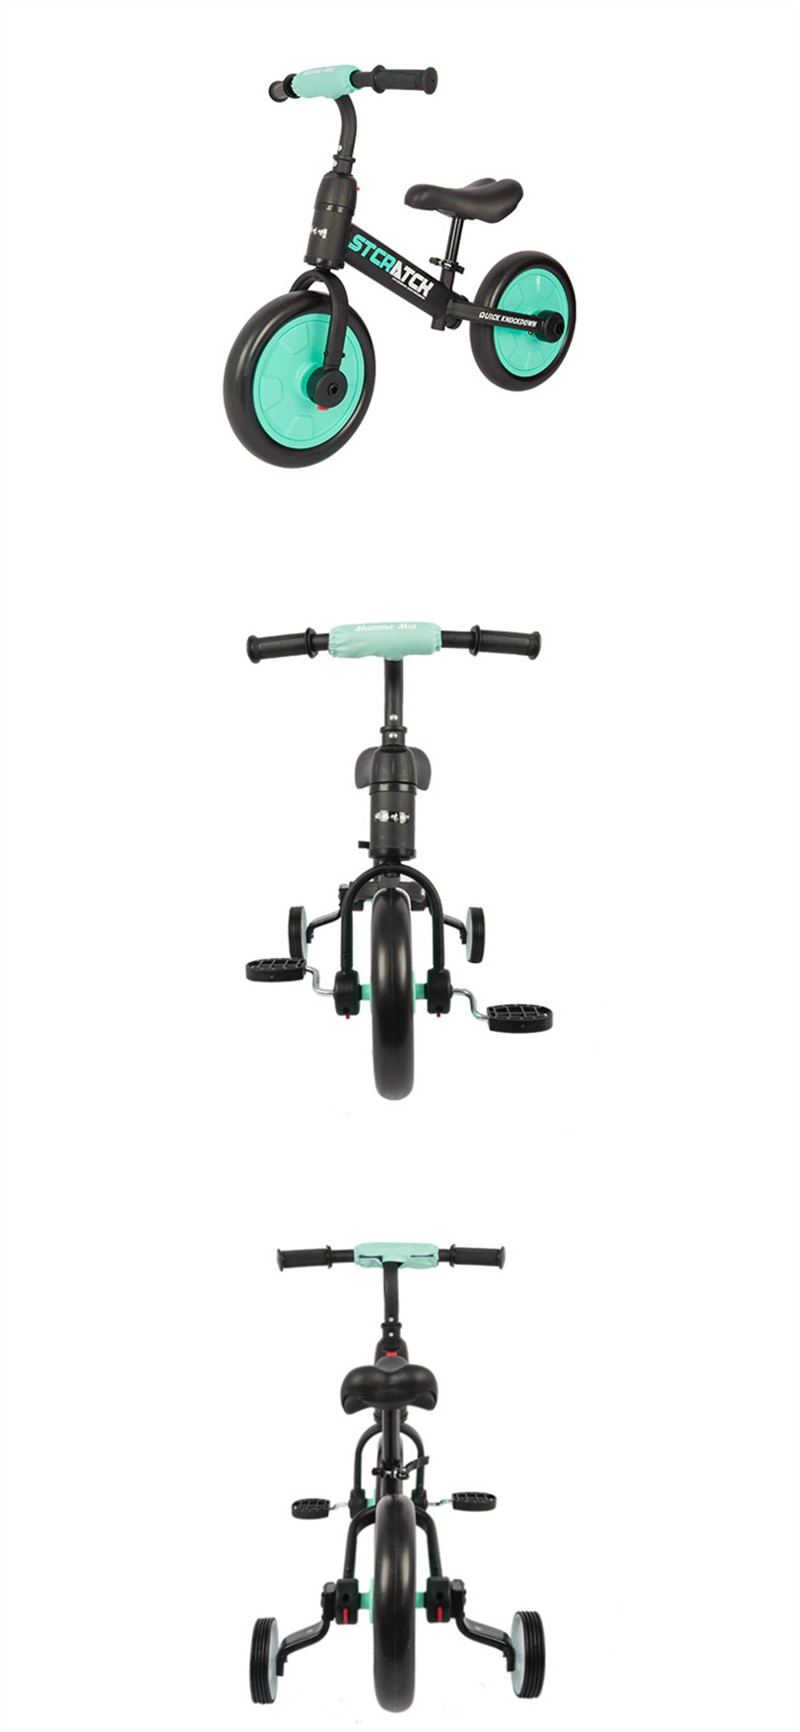 H875b4ca0bdee4a91b2ced402eeddf6e2C Multifunction 2 in 1 Kids Tricycle + Balance Bike Bicycle For 2~6 Ages Child Toddler Complete Cycling Bike Learn to Ride